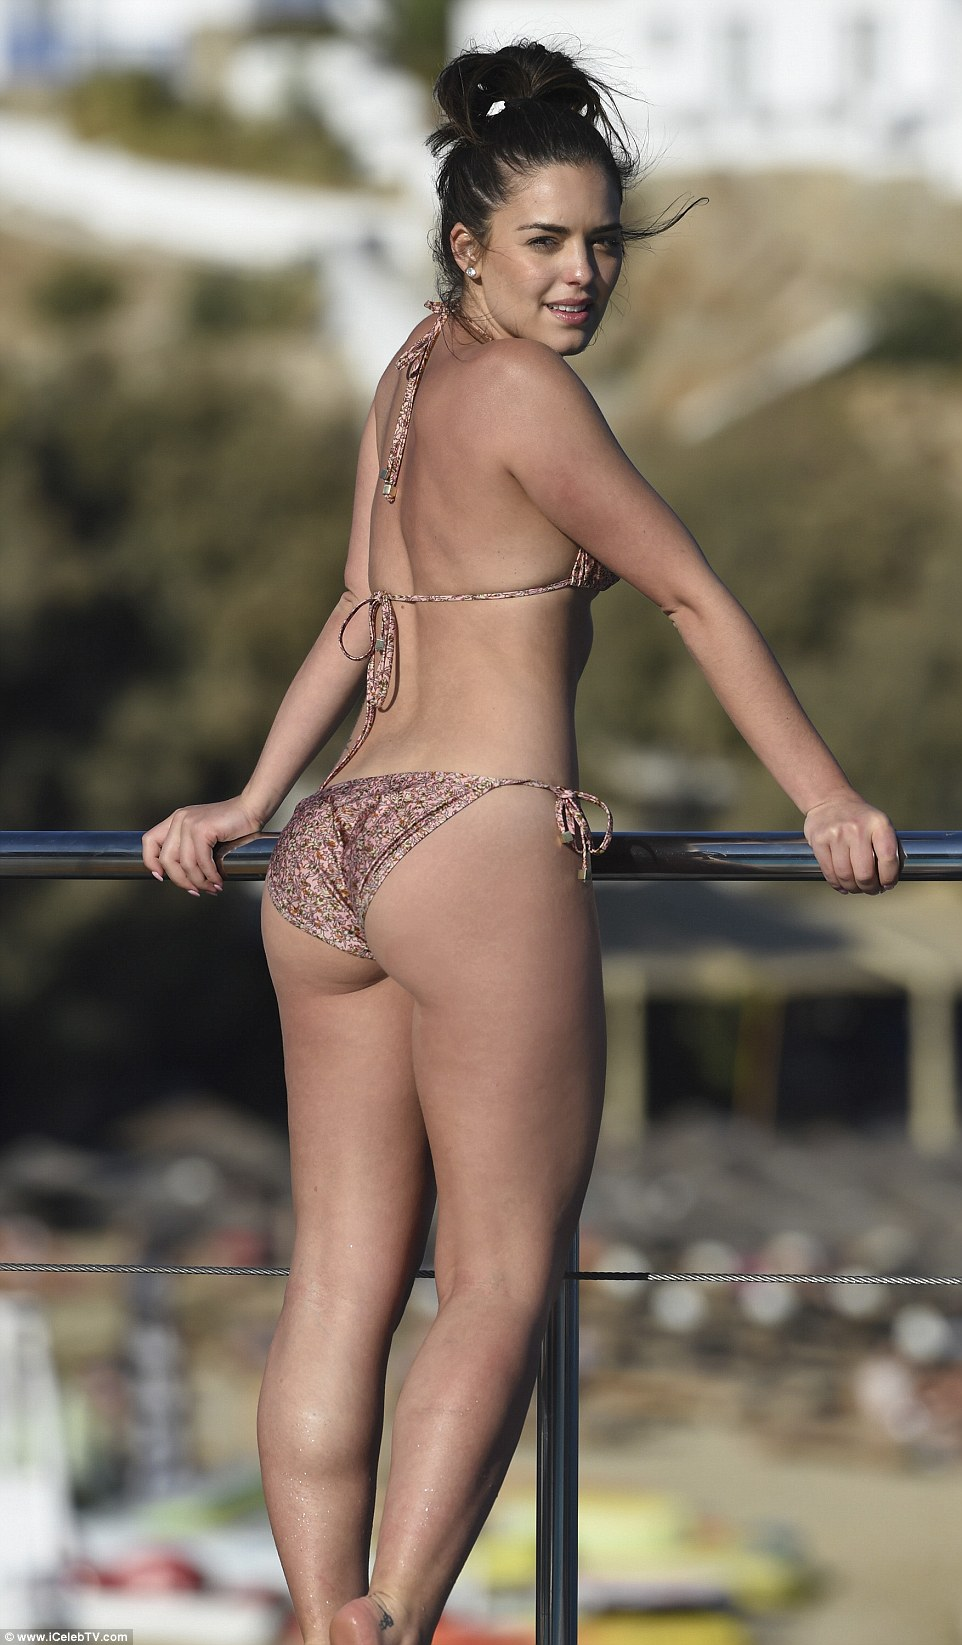 Perky!The 23-year-old stunner, who plays Paige Smith in the Australian soap, slipped into a barely-there bikini which showed off every inch of her curves as she enjoyed a poolside suntanning session